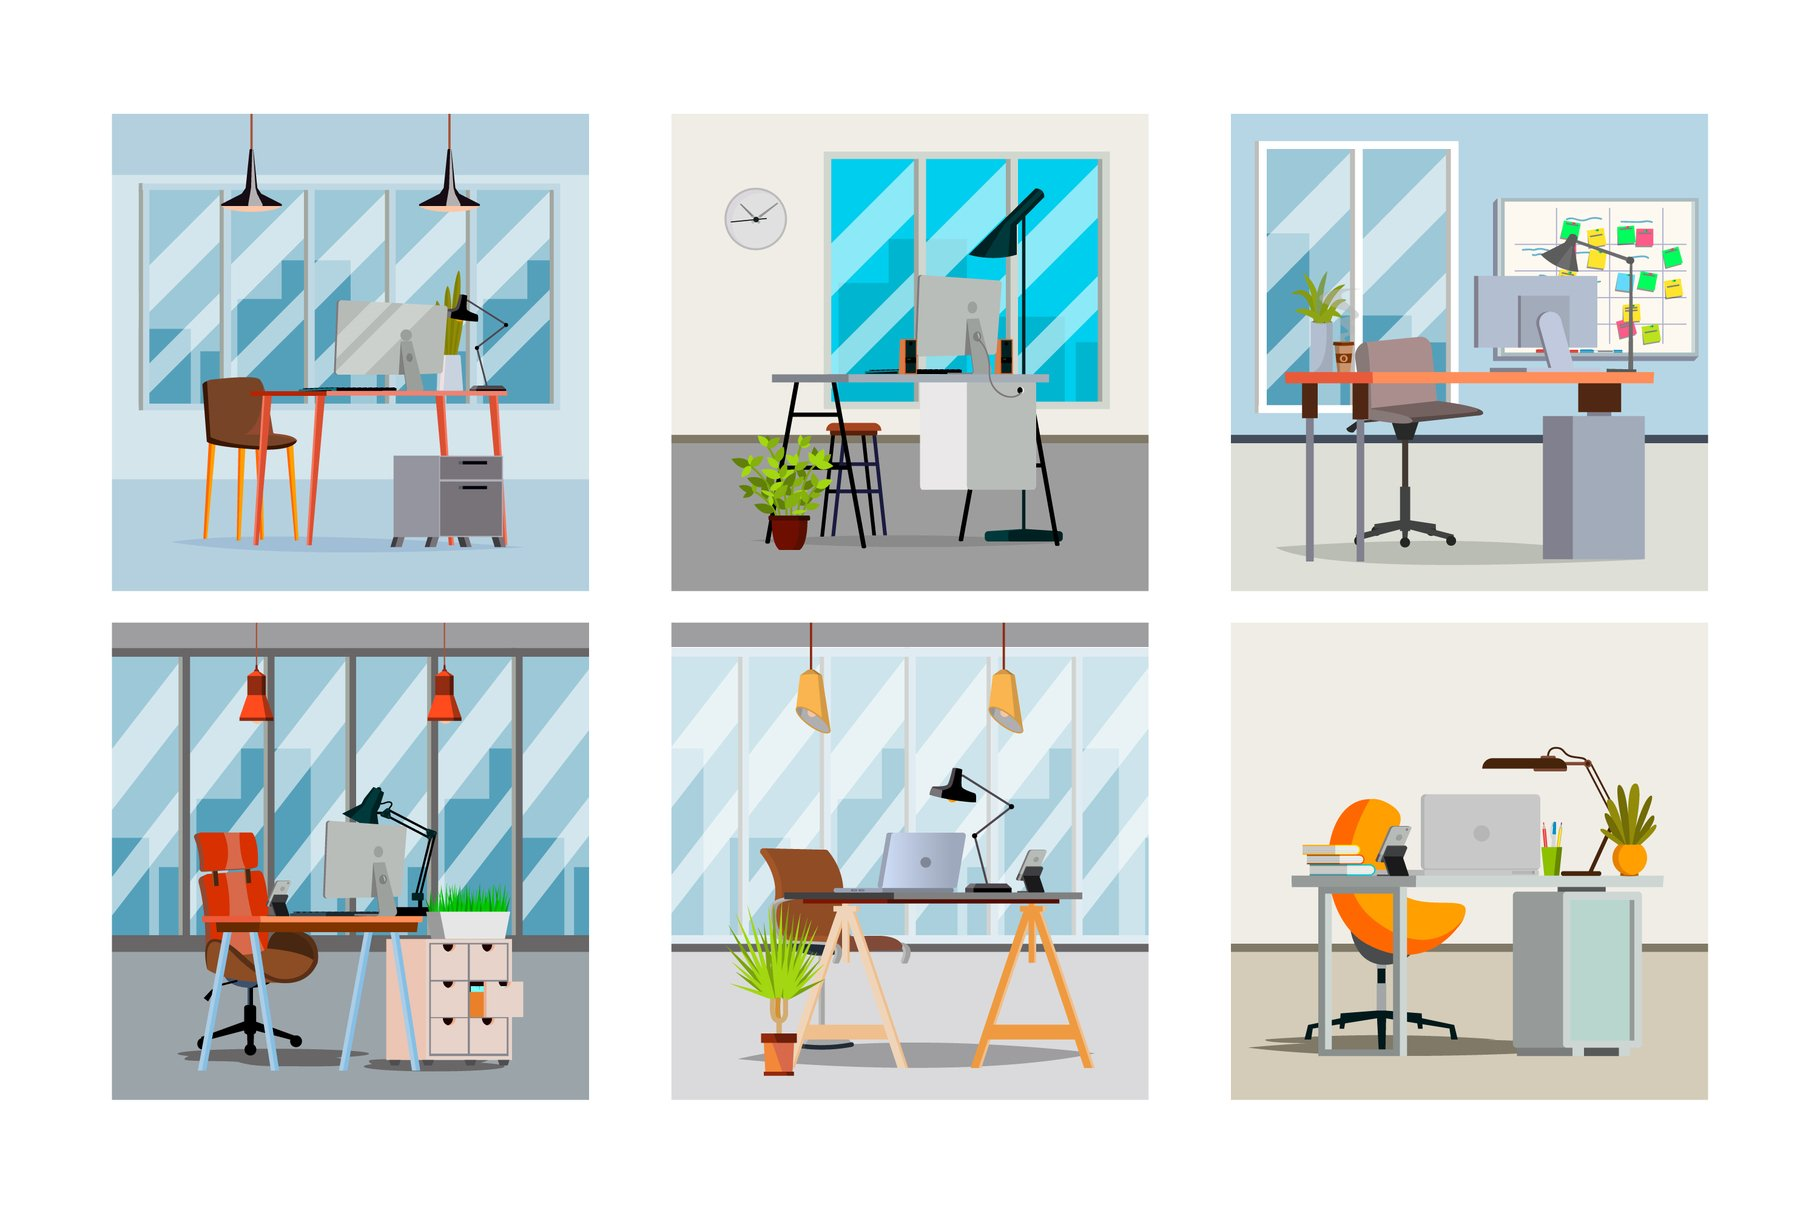 Office Interior Vector. Interior Office Room With Furniture example image 1